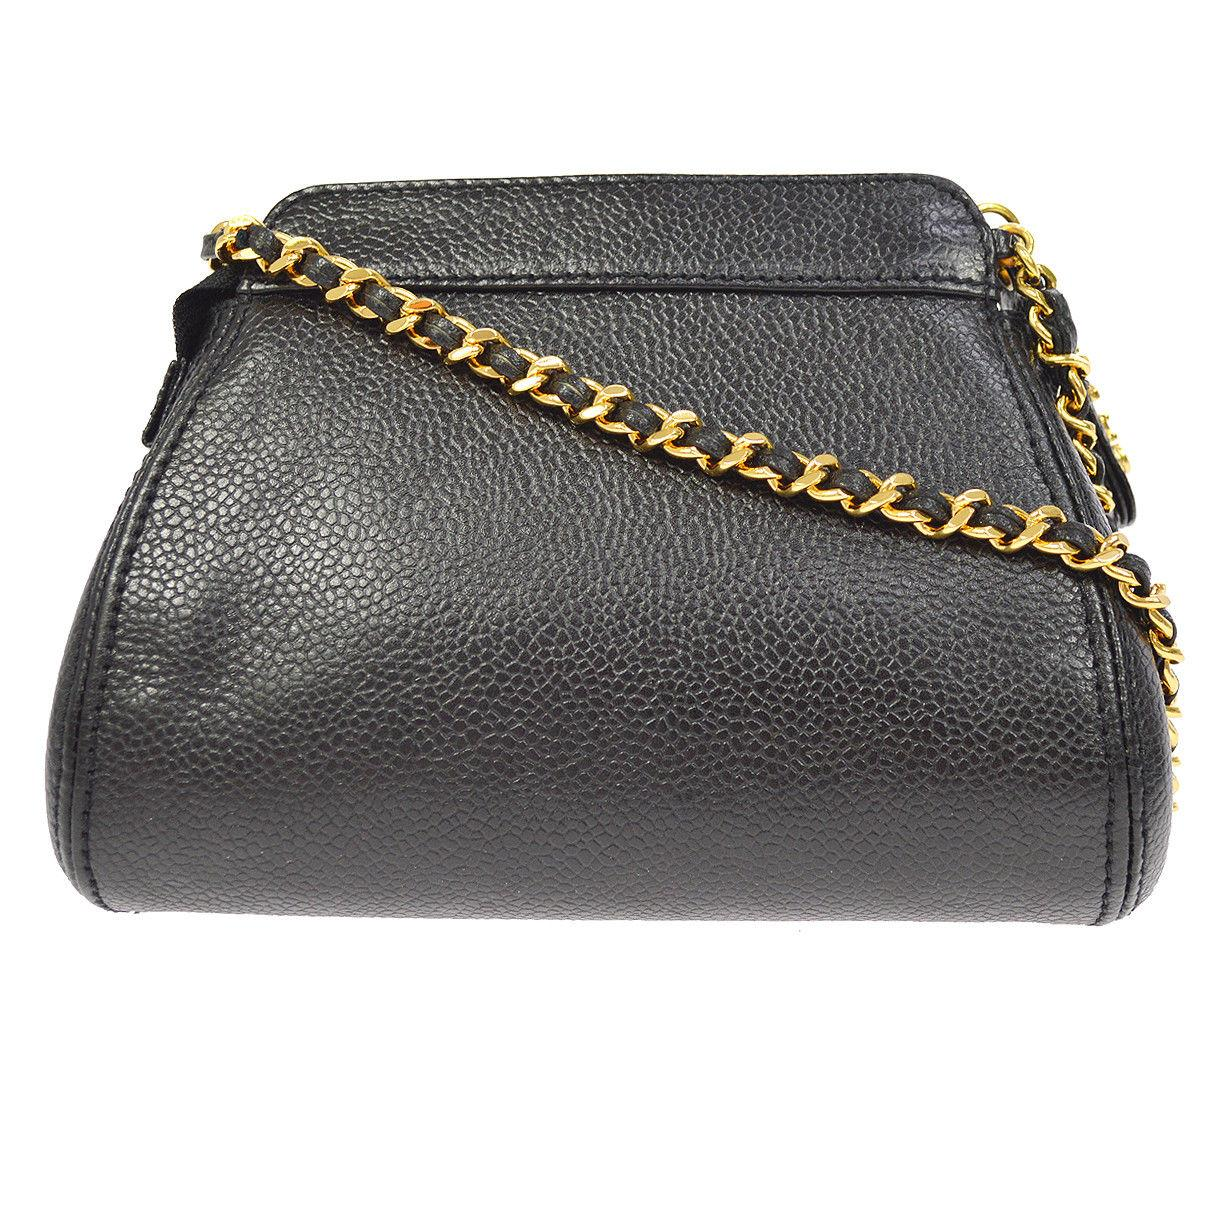 93ab4d6bbf95 Chanel Black Caviar Leather Gold Logo Evening Small Mini Shoulder Bag For  Sale at 1stdibs